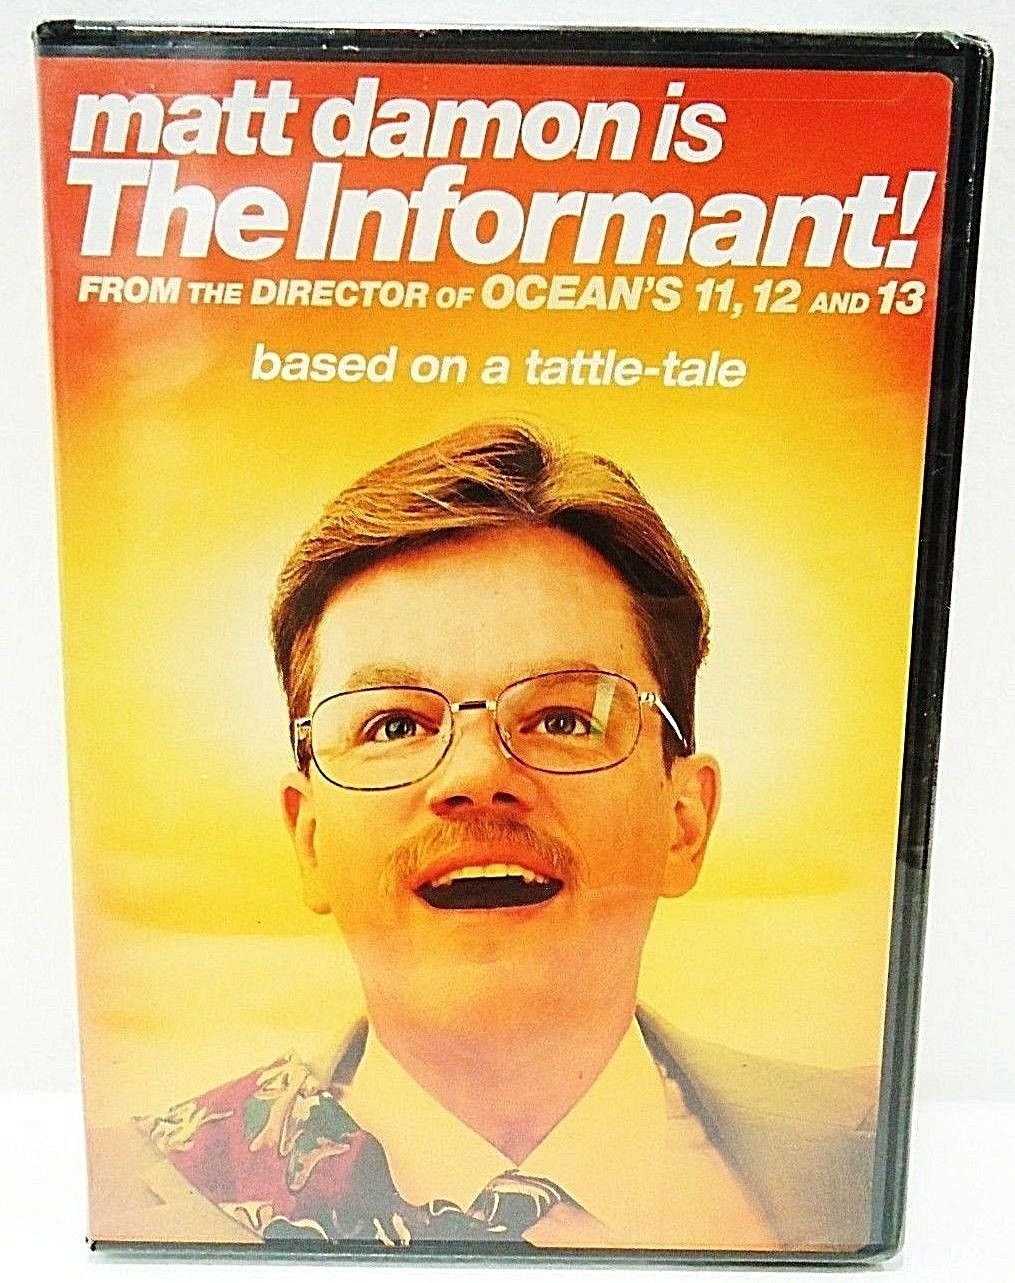 THE INFORMANT - DVD - MATT DAMON - BRAND NEW - SEALED - COMEDY - MOVIE